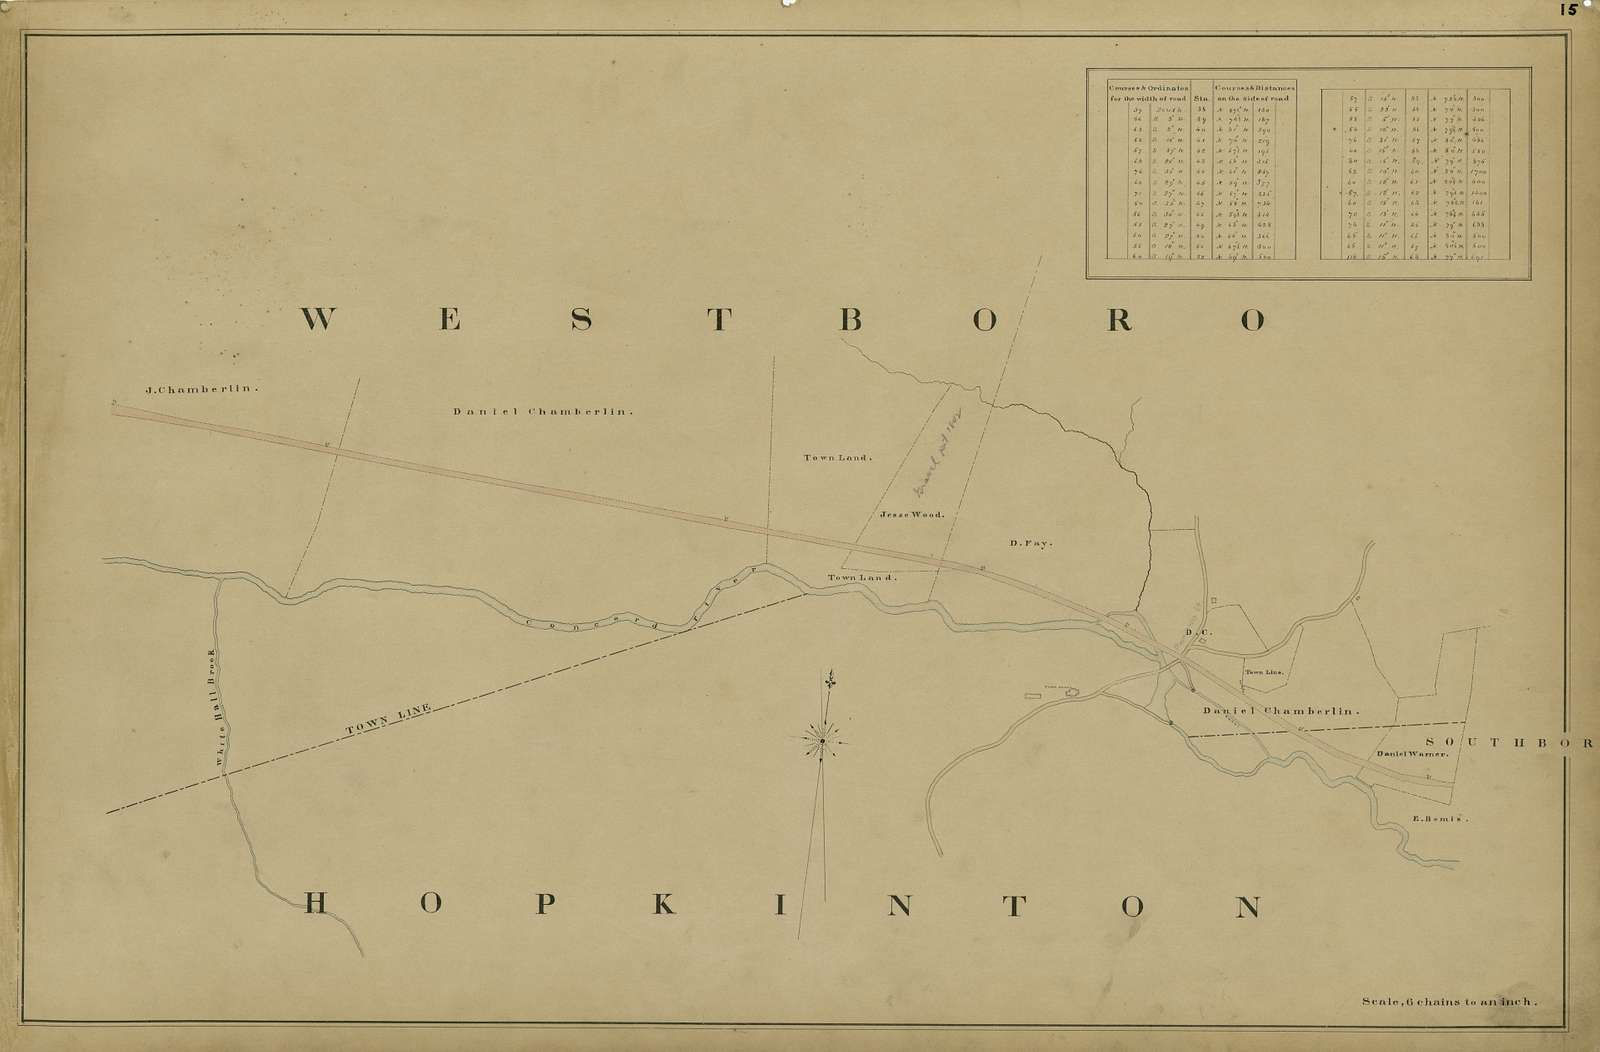 Maps showing the location of the Boston & Worcester Rail Road : copied from the maps in the offices of the clerks of the county commissioners in the several counties /